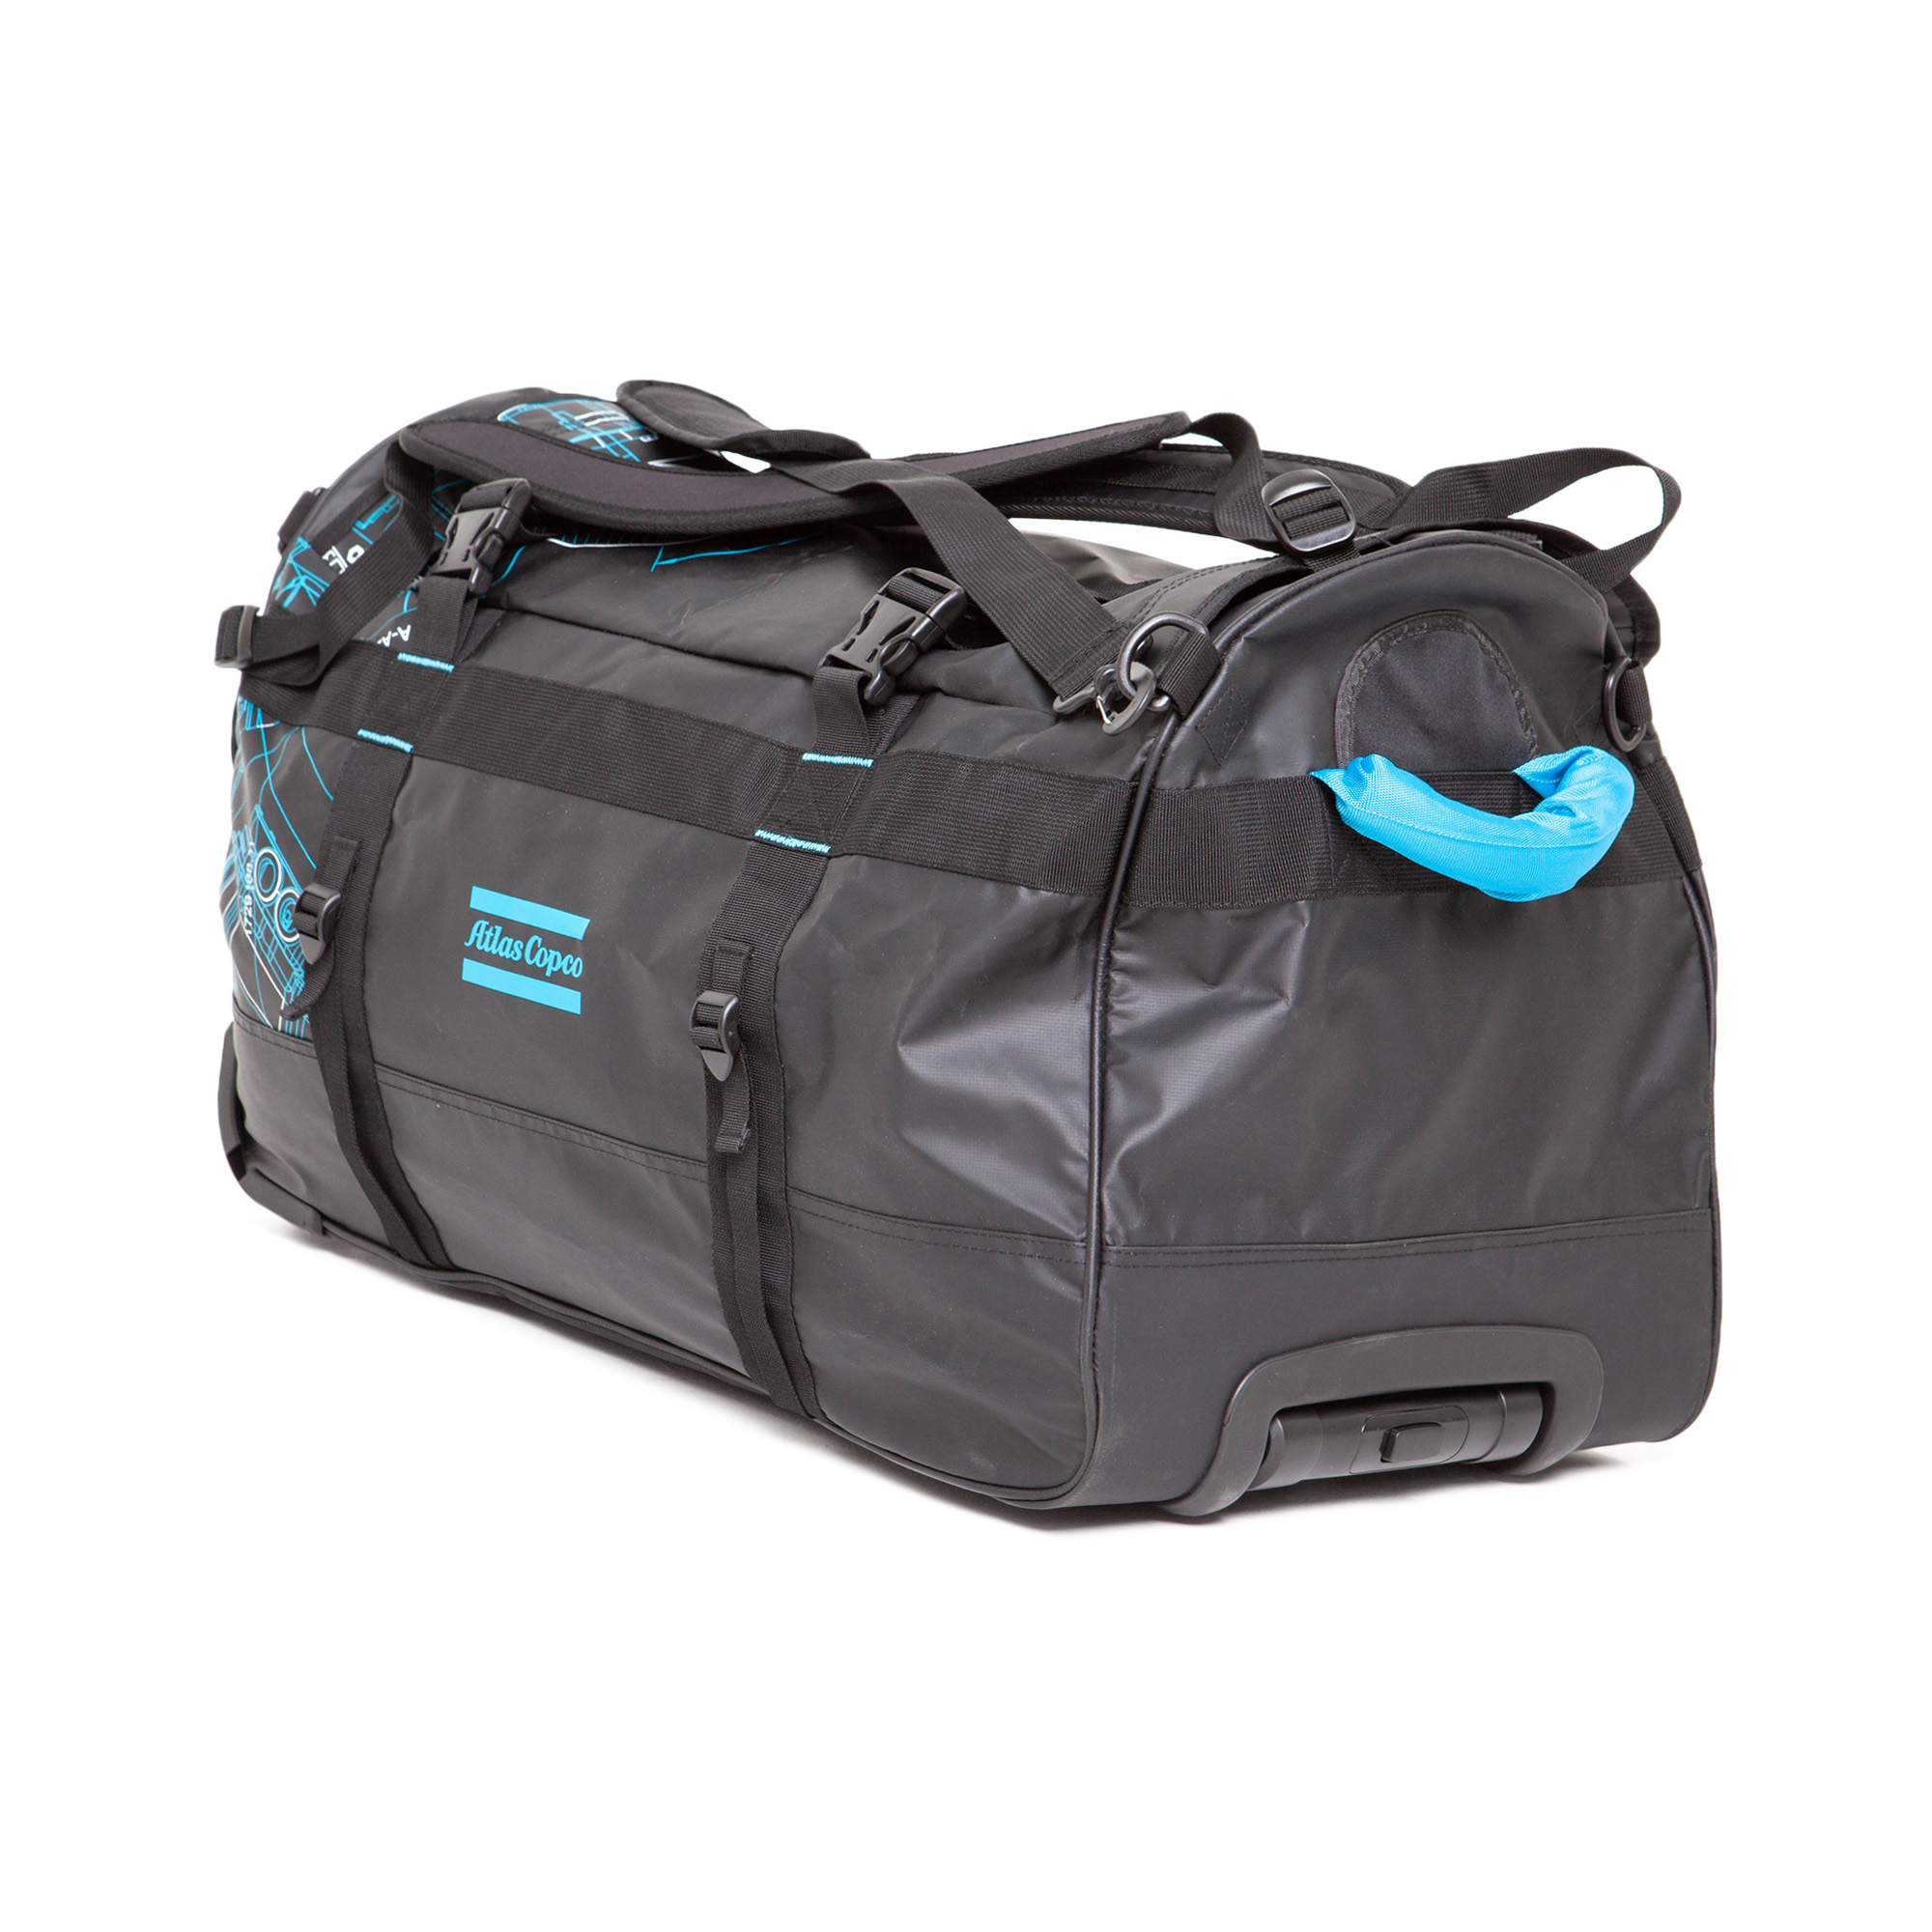 This Trolley Bag is a classic, multi-functional wheeled trolley bag in highly durable 500D Tarpaulin. A large 100-litre travel bag with a fully extendable handle. The bag is water-repellent.